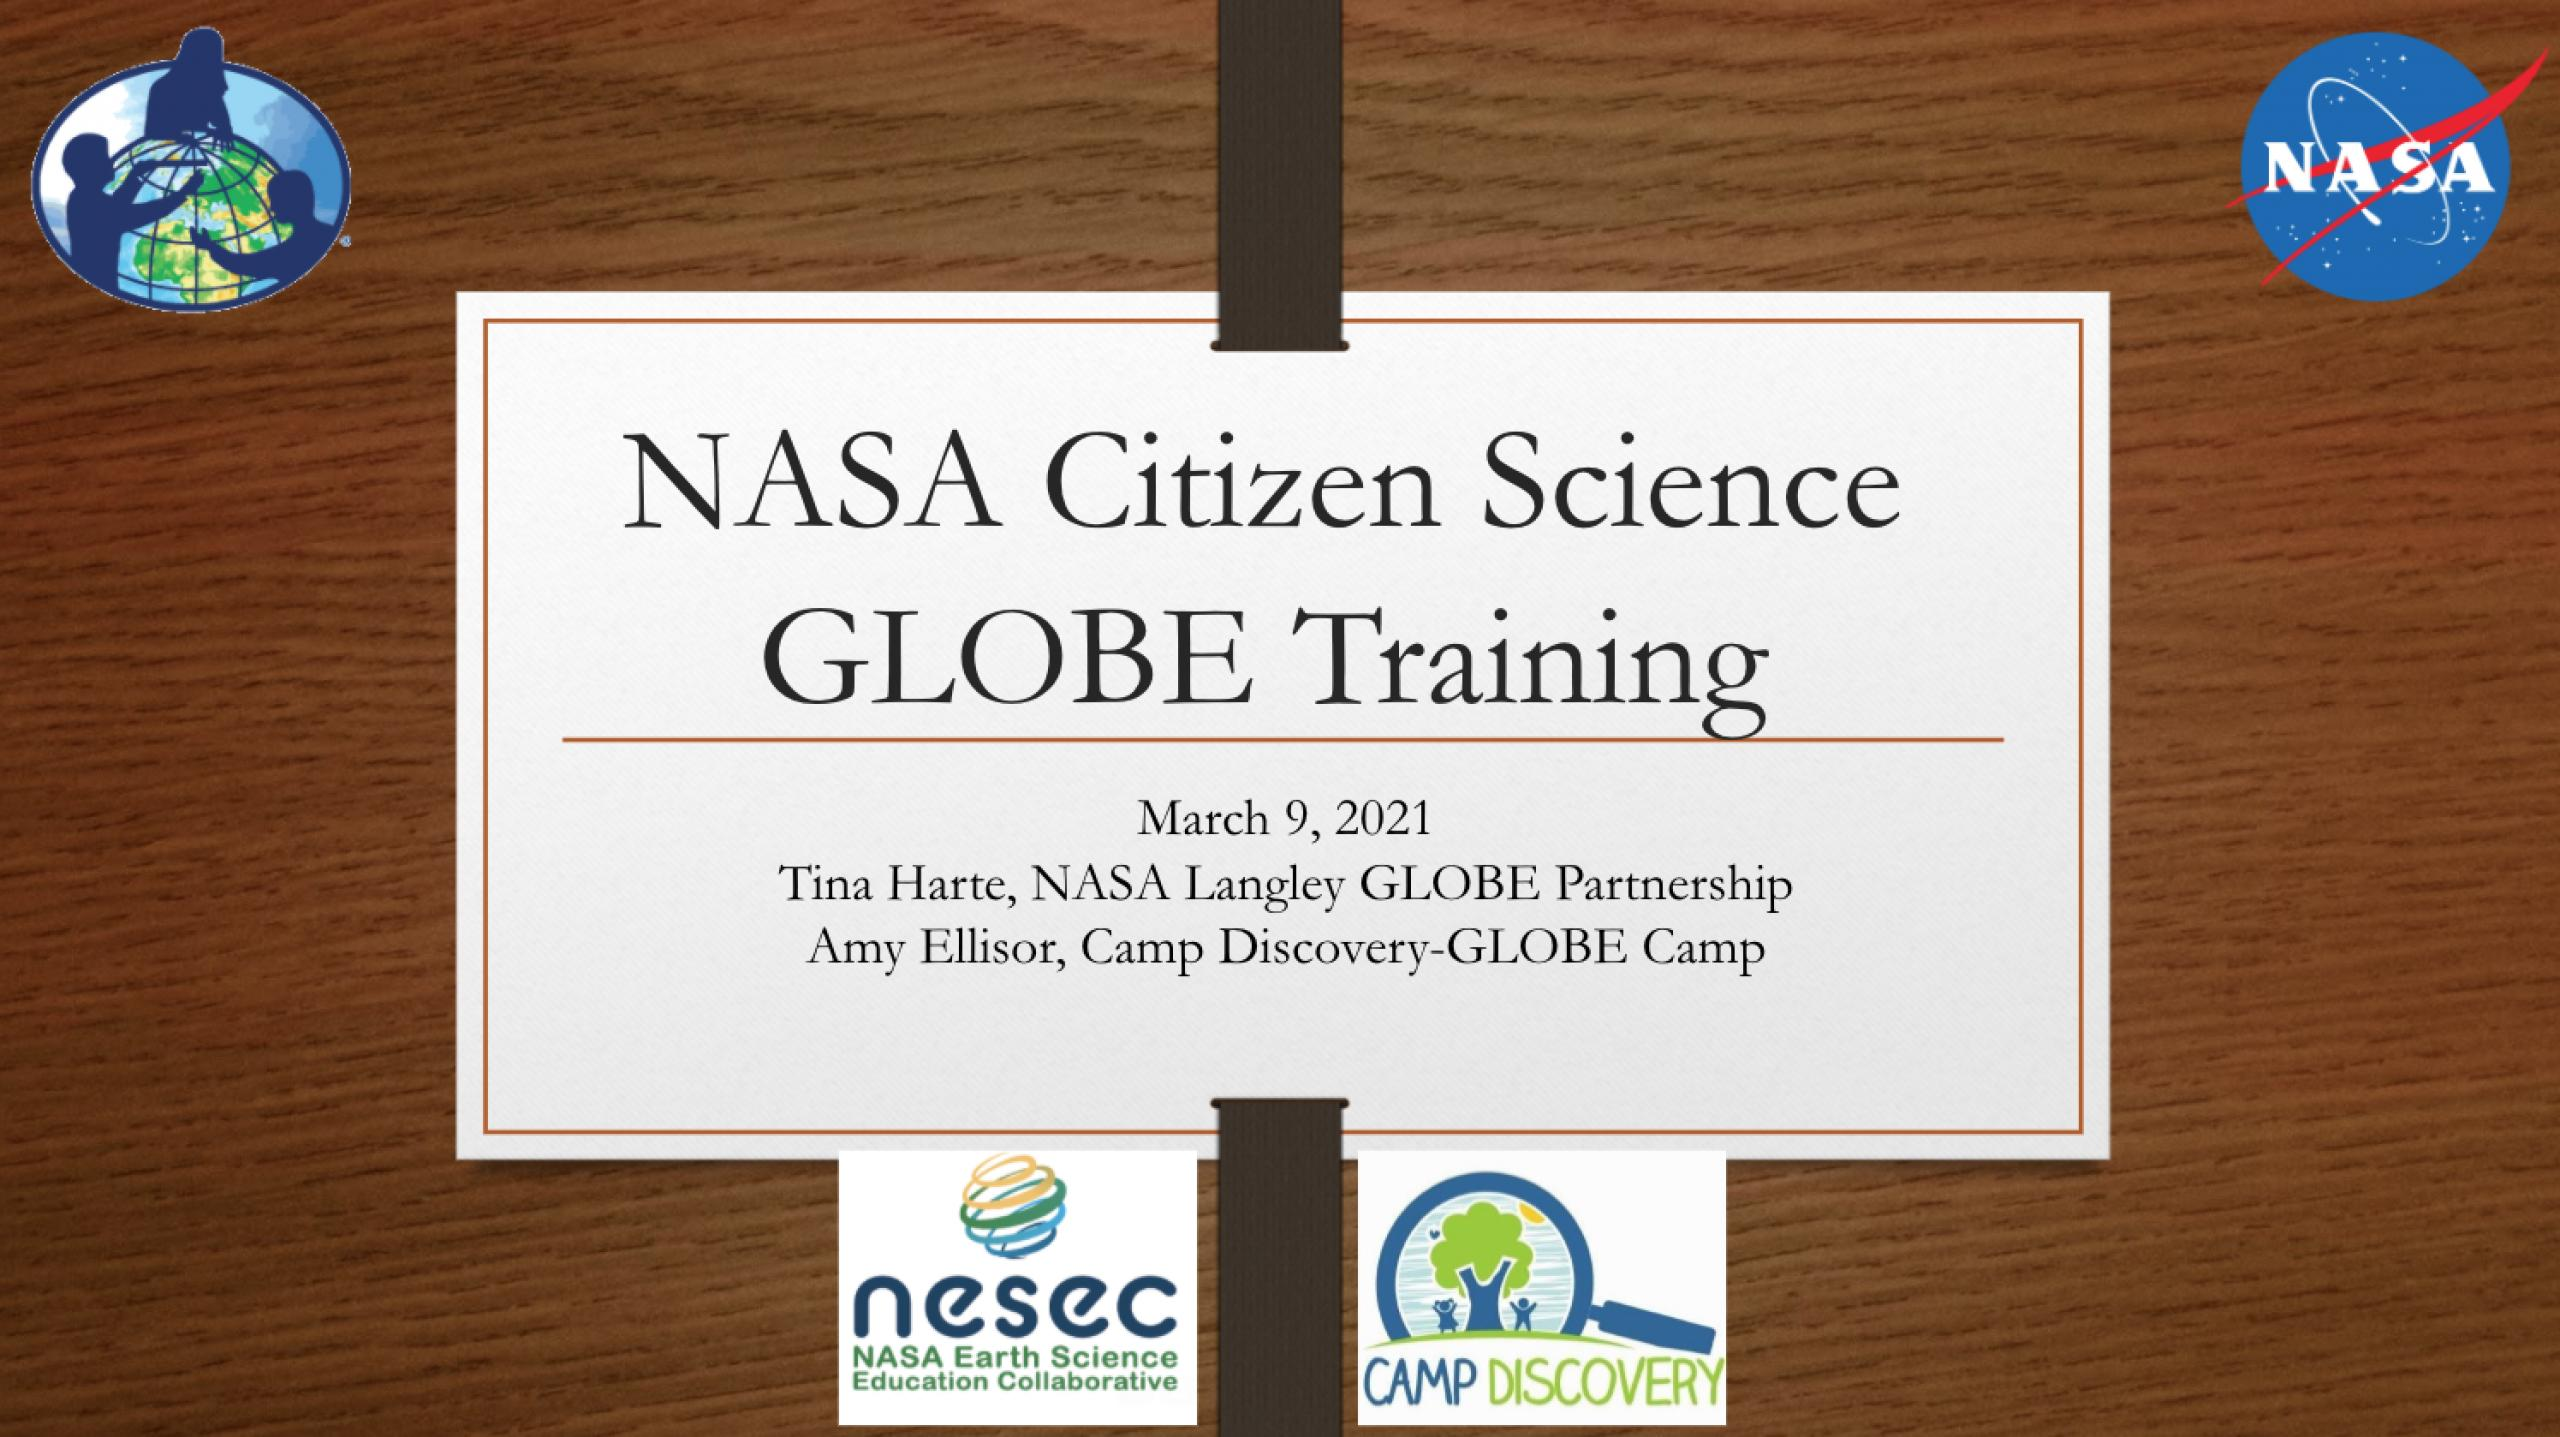 Intro slide for NASA Citizen Science GLOBE Training.